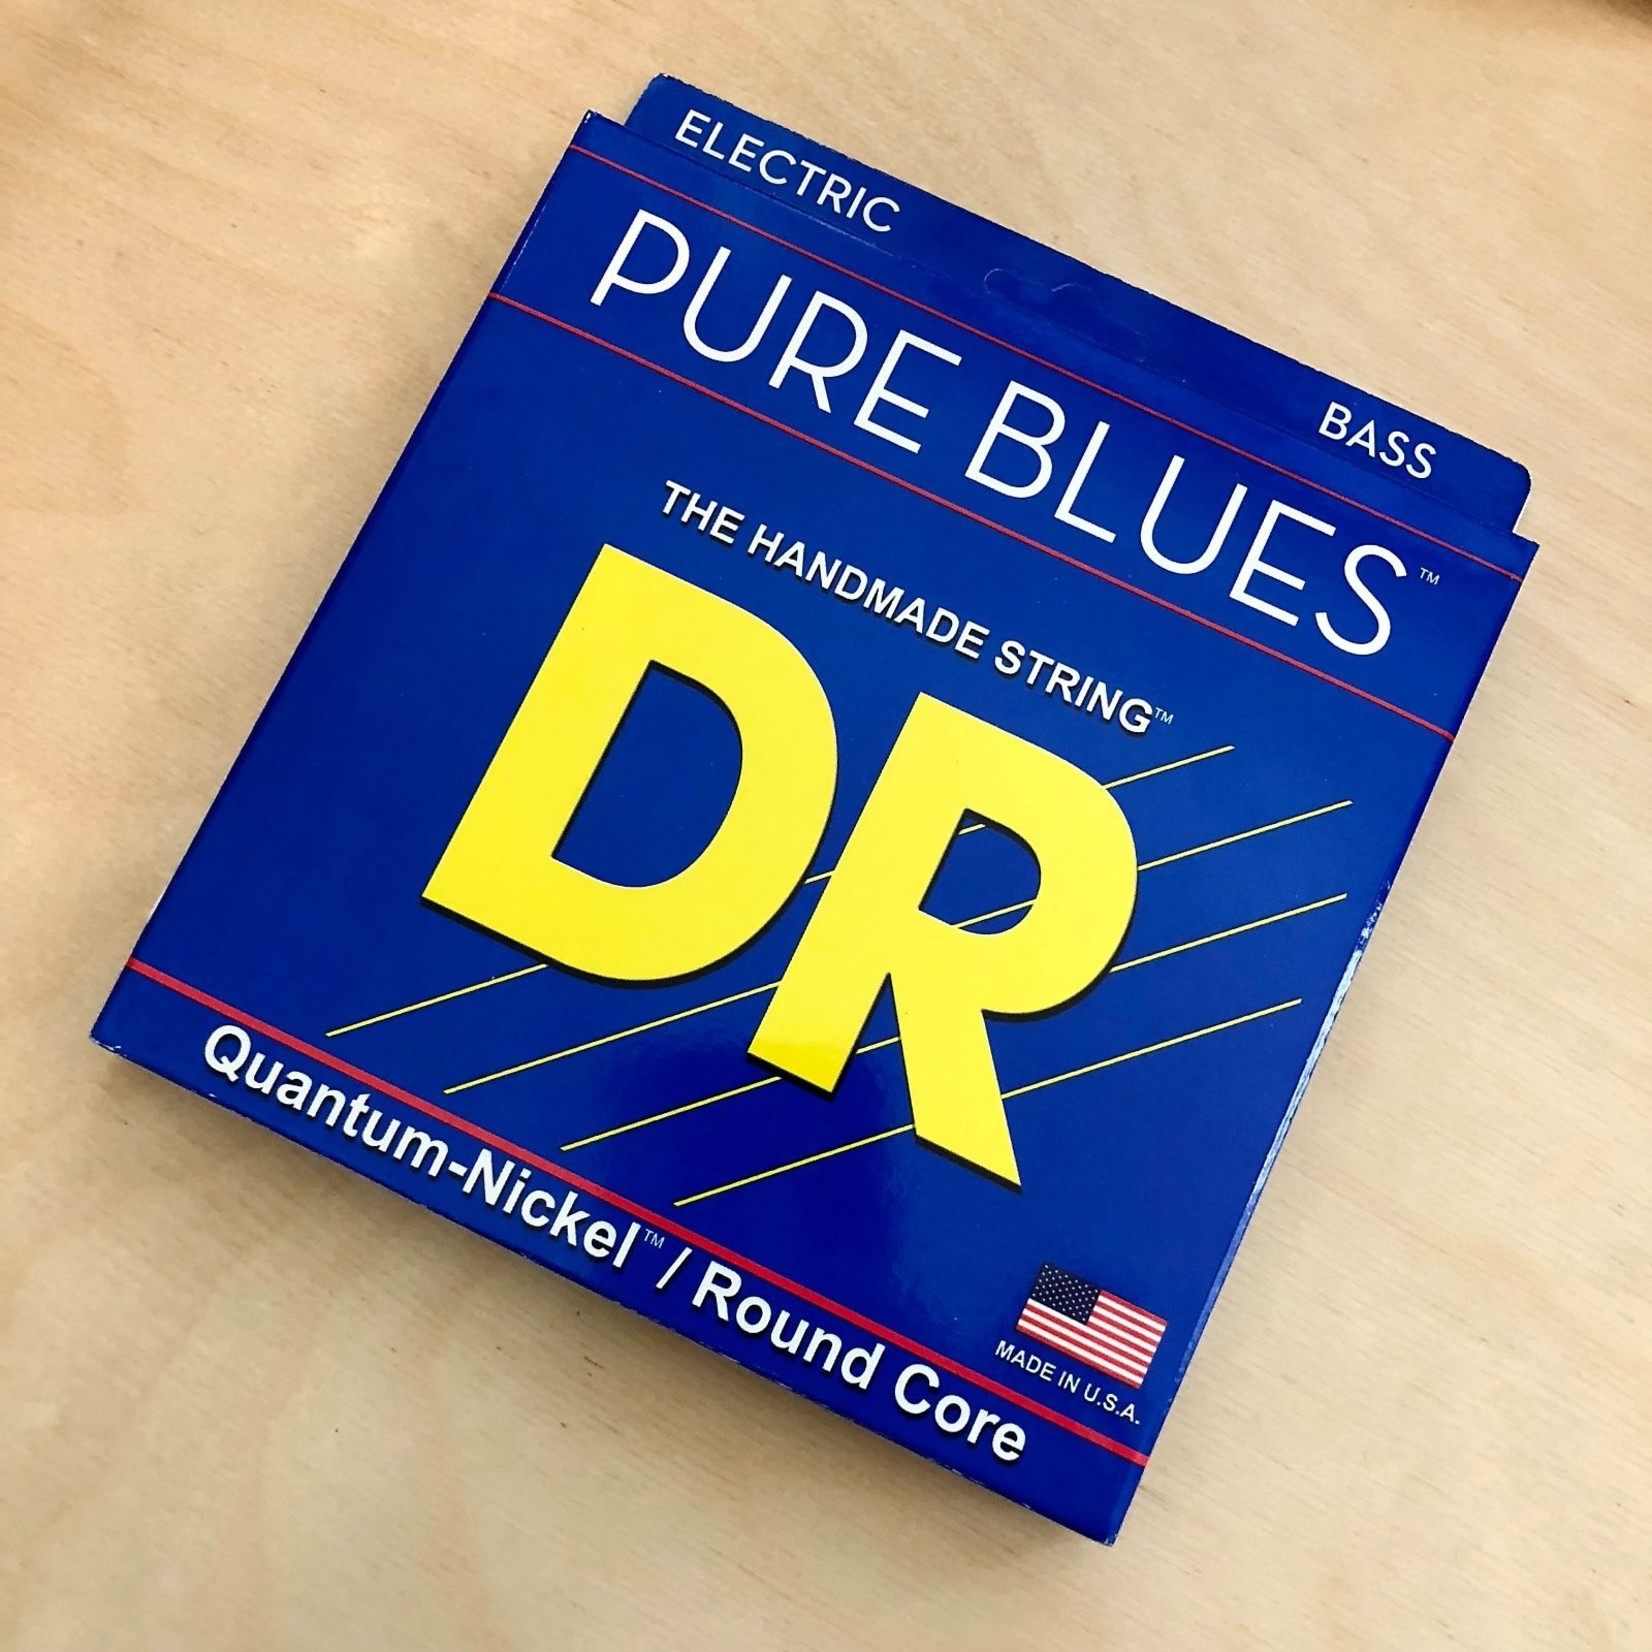 DR Strings DR Strings Pure Blues  Bass, Victor Wooten Signature Gauge Set (40 55 75 95), Quantum-Nickel